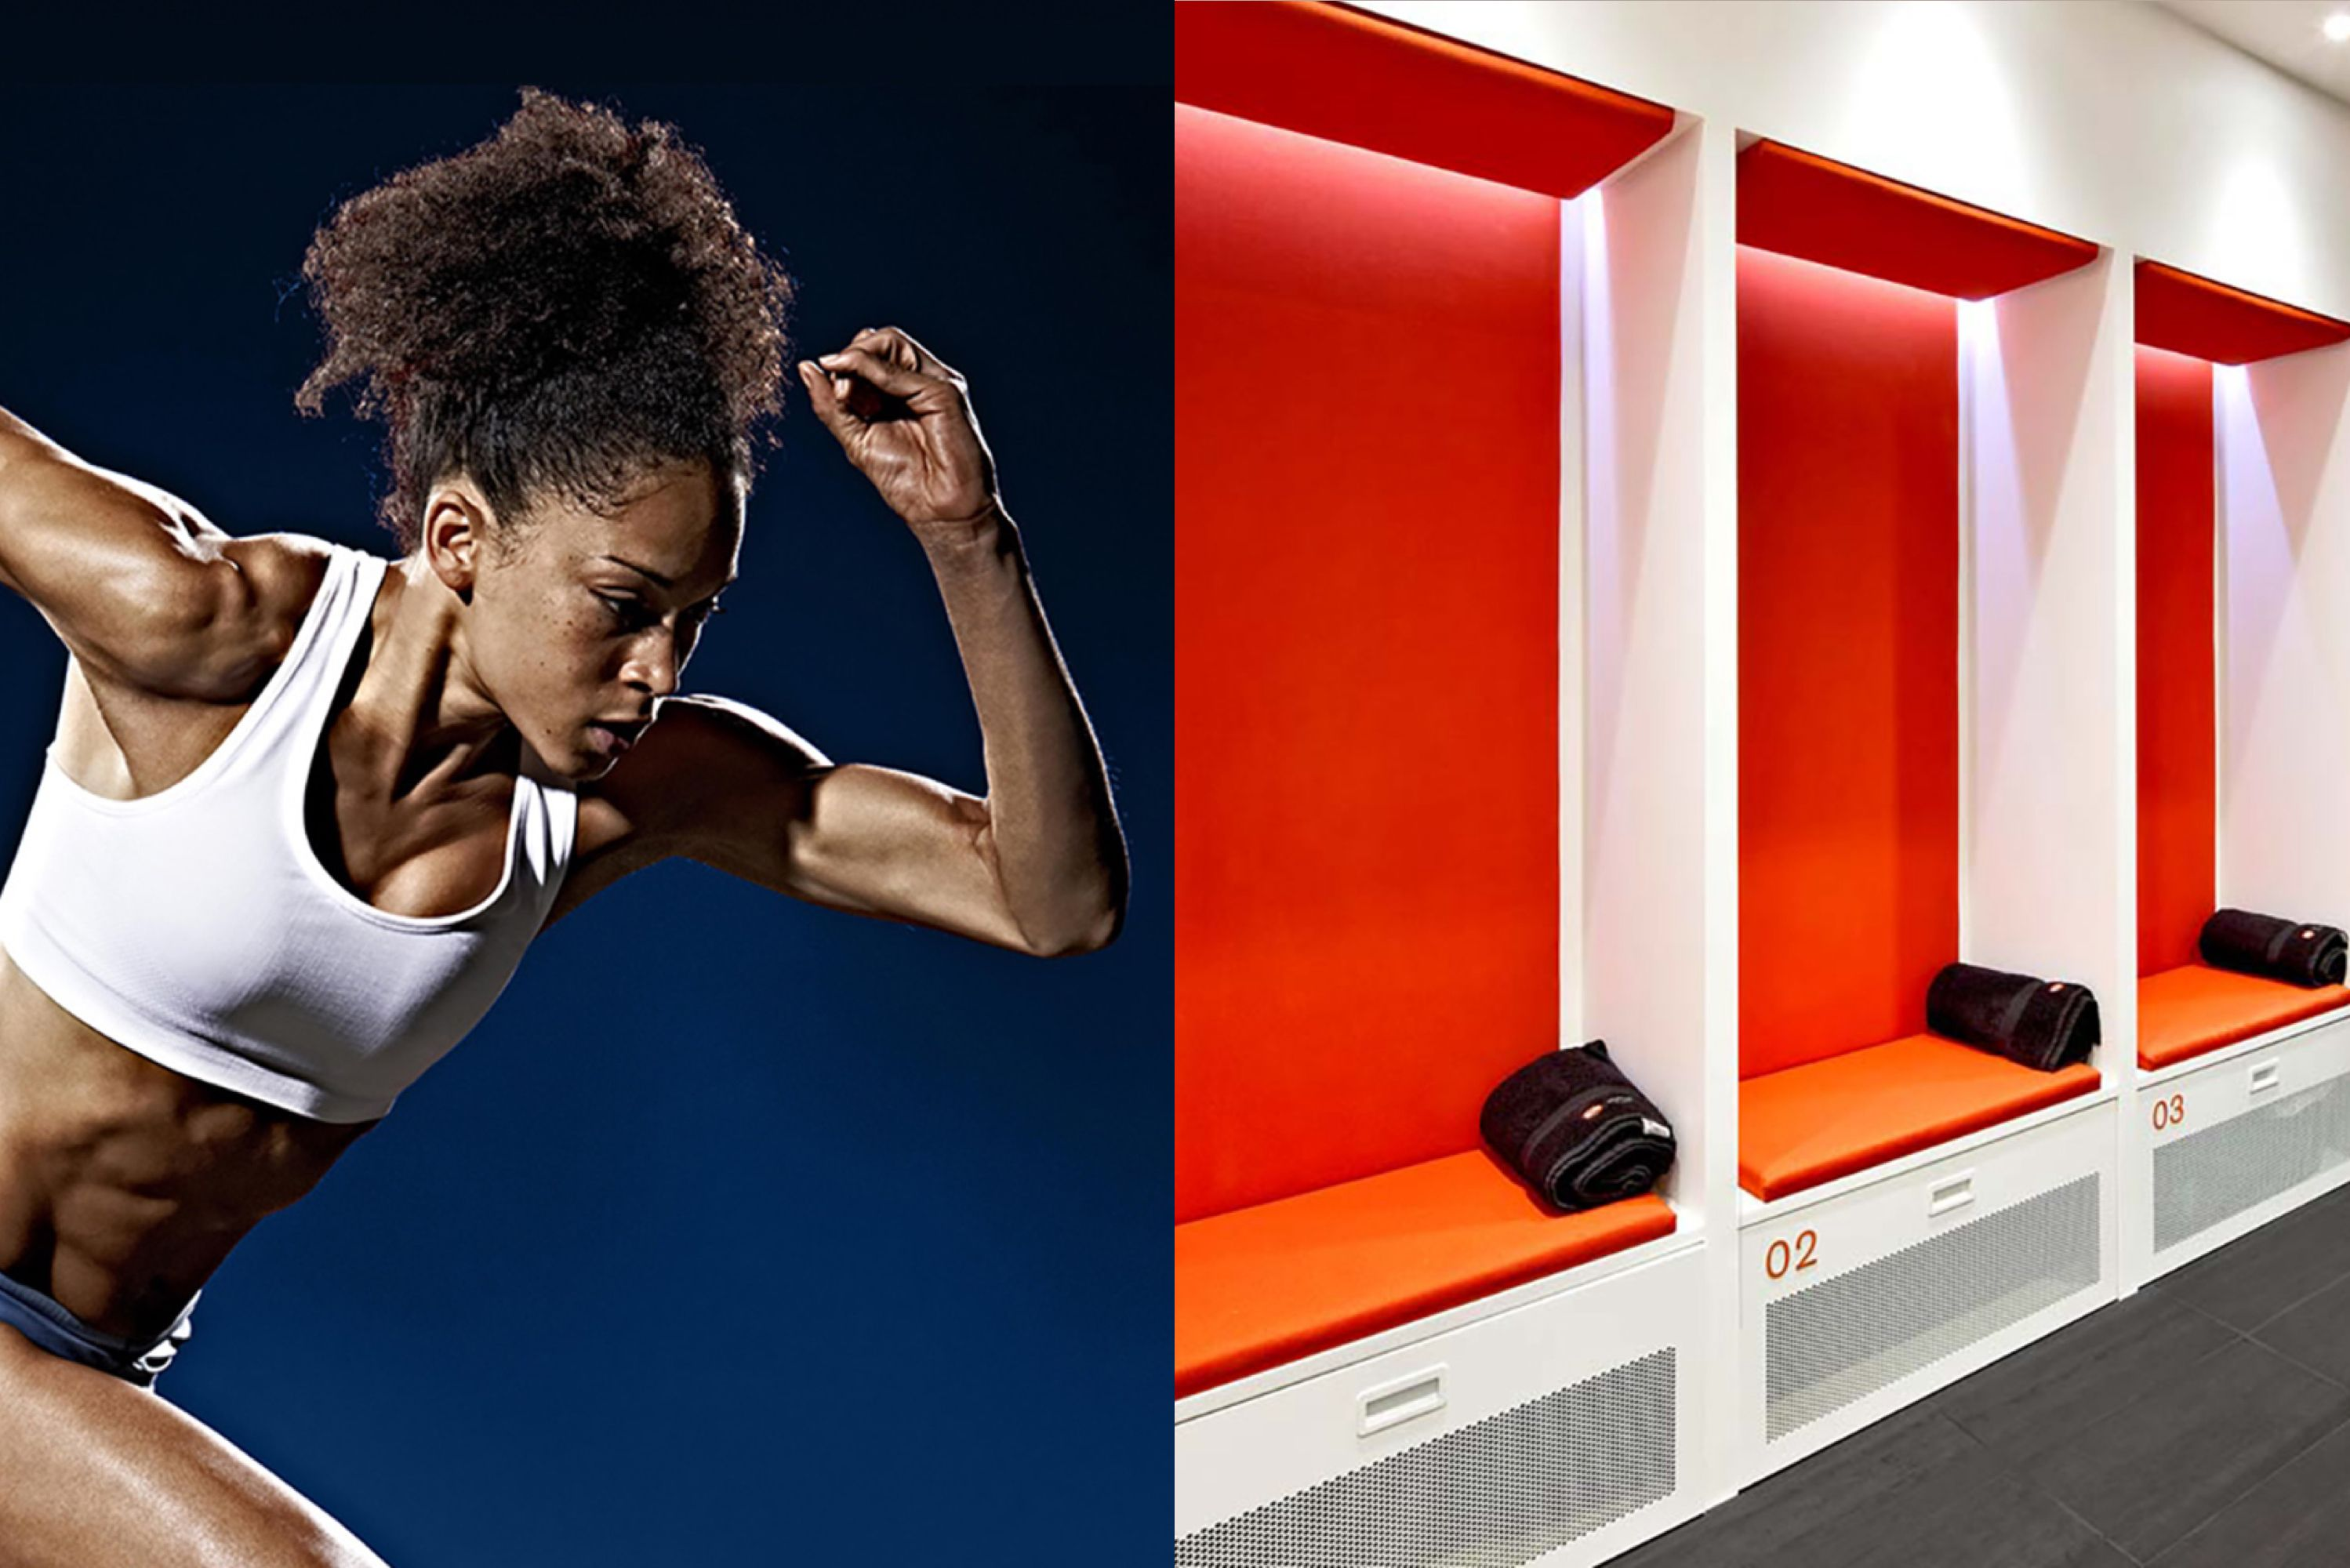 Split image of a female athlete in a running stance and an interior of a changing facility in the GSK lab